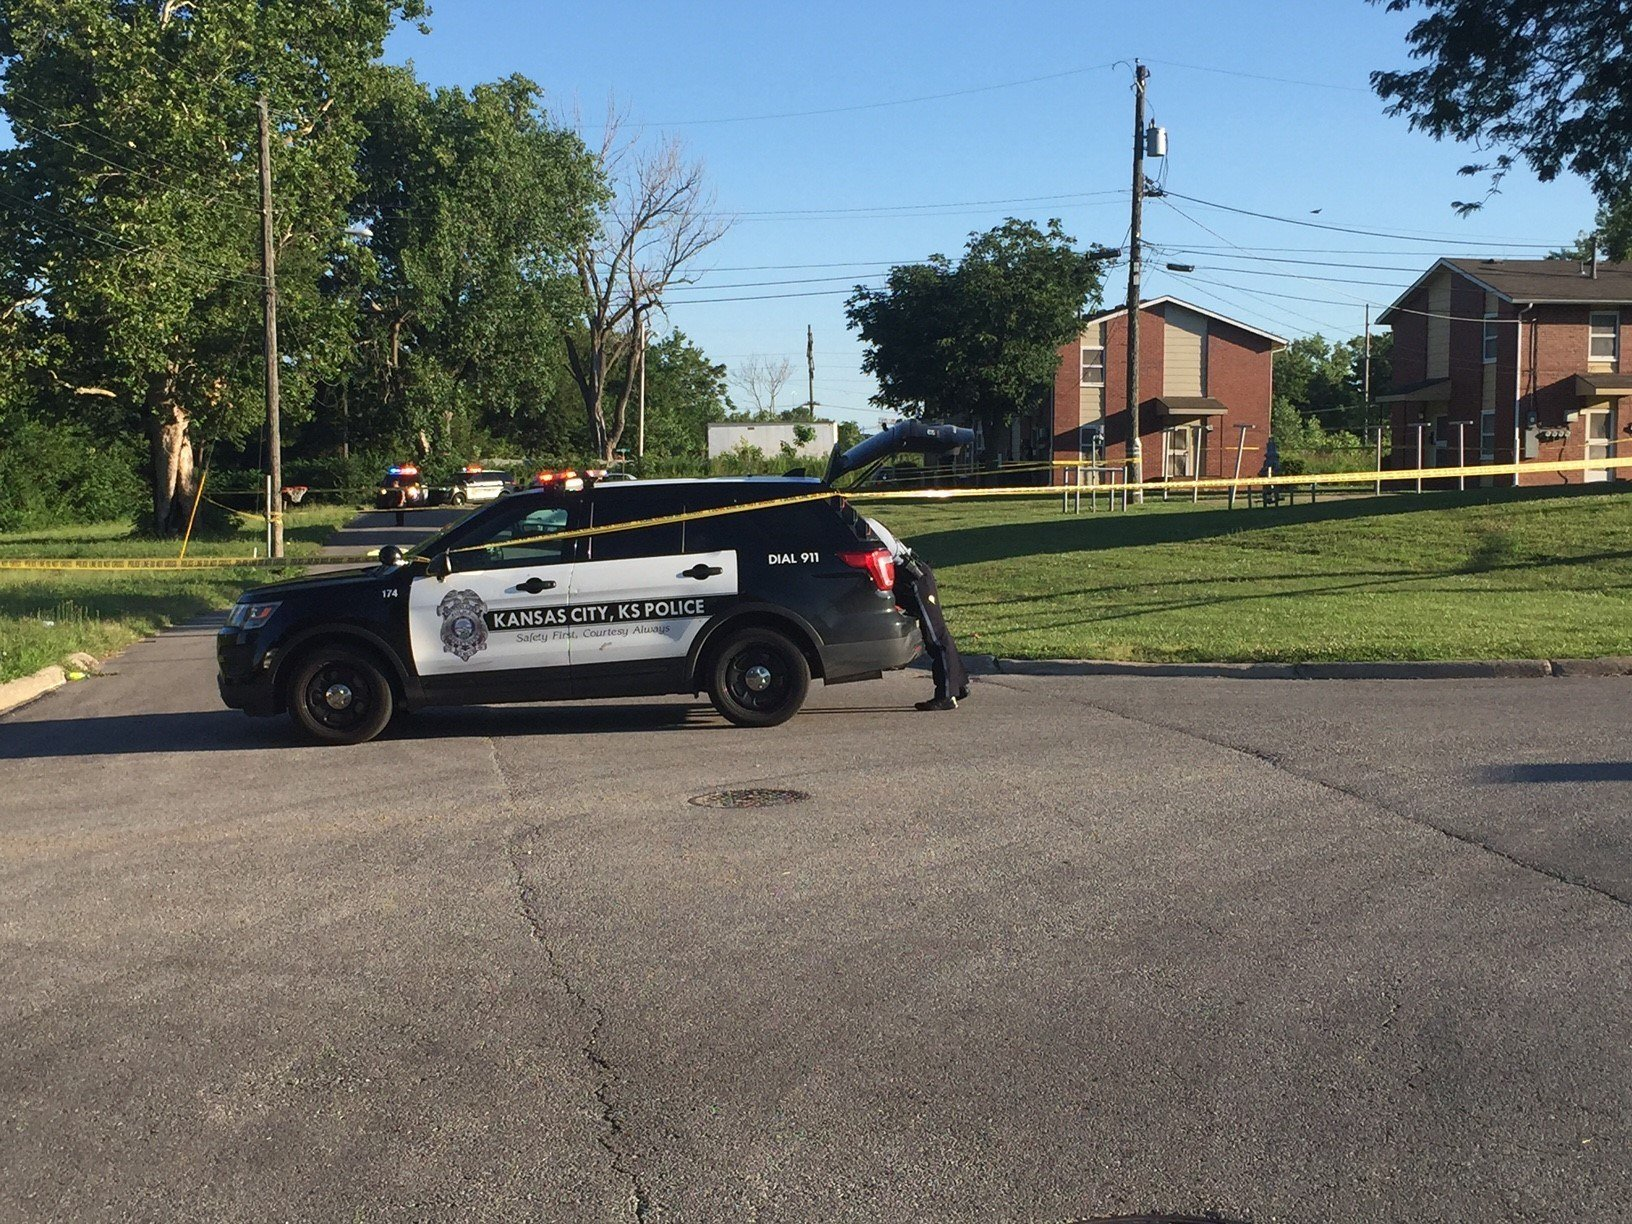 One person is in life-threatening condition after a shooting at 1st and Walker in KCK. (Dwain Crispell/KCTV)